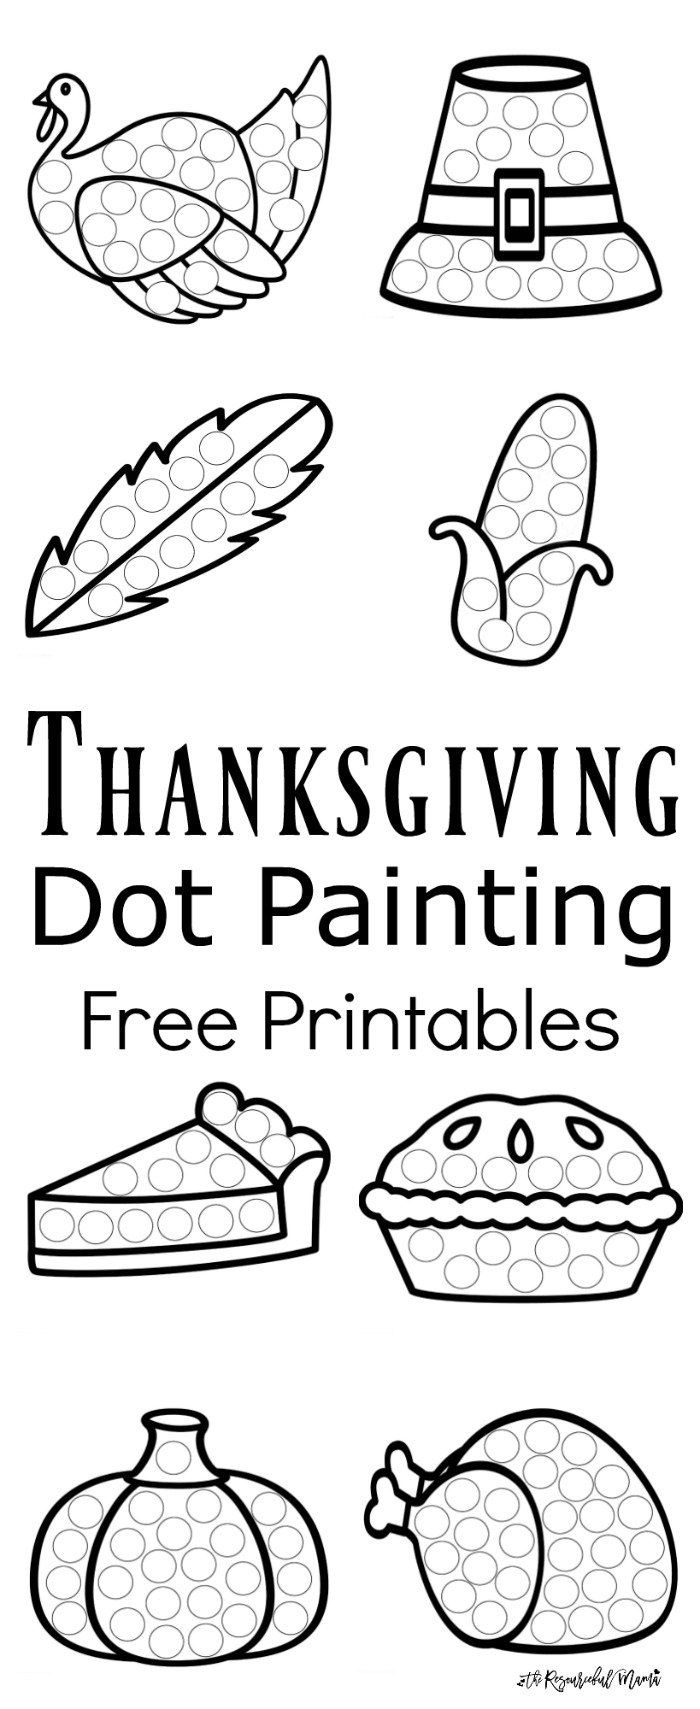 Thanksgiving Dot Painting {Free Printables} | Best Of Kids And - Free Thanksgiving Printables Dot To Dot